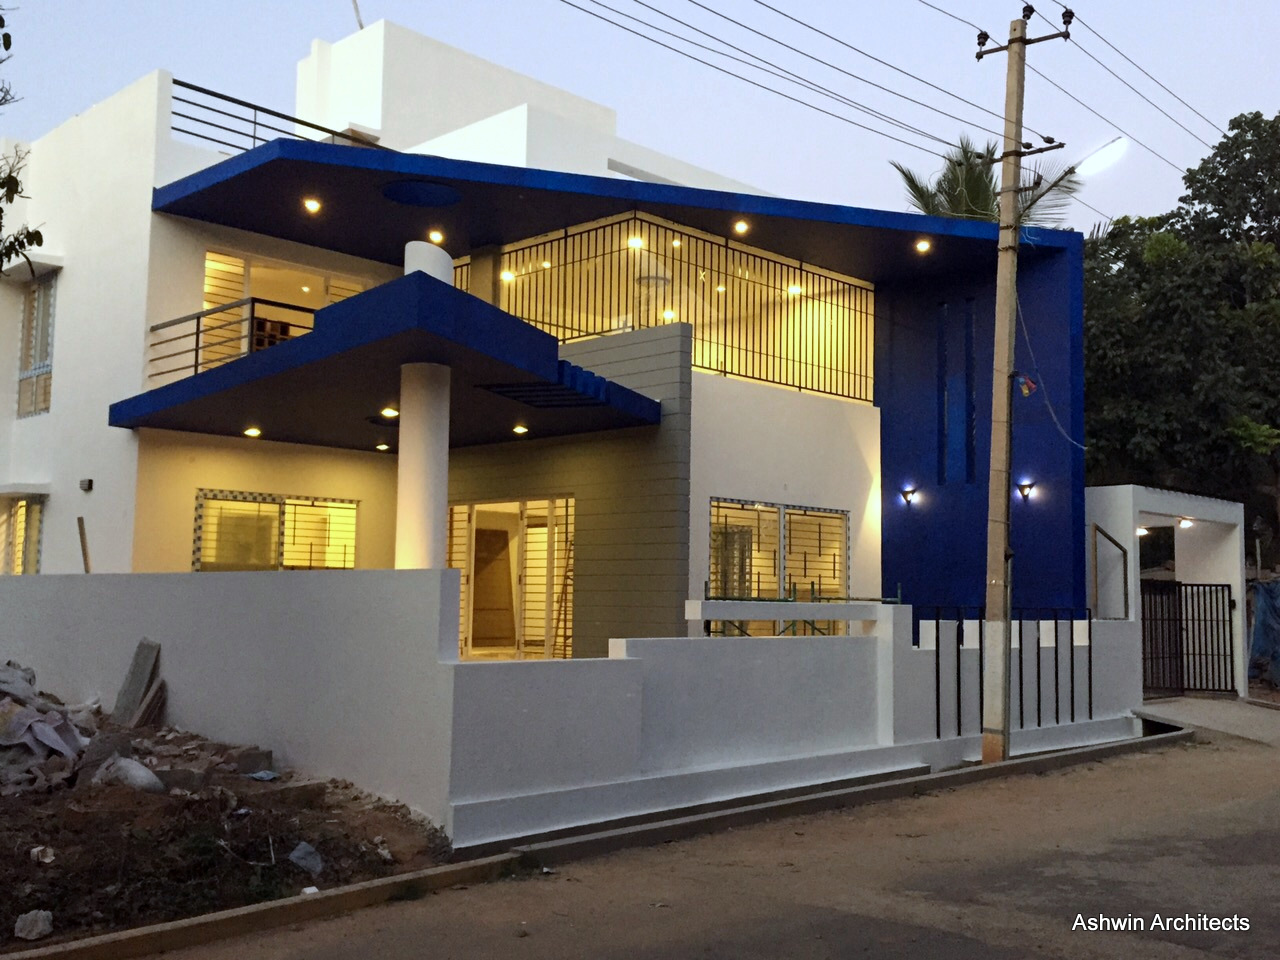 Mala S 50 X 80 Ft Bungalow In India By Ashwin Architects